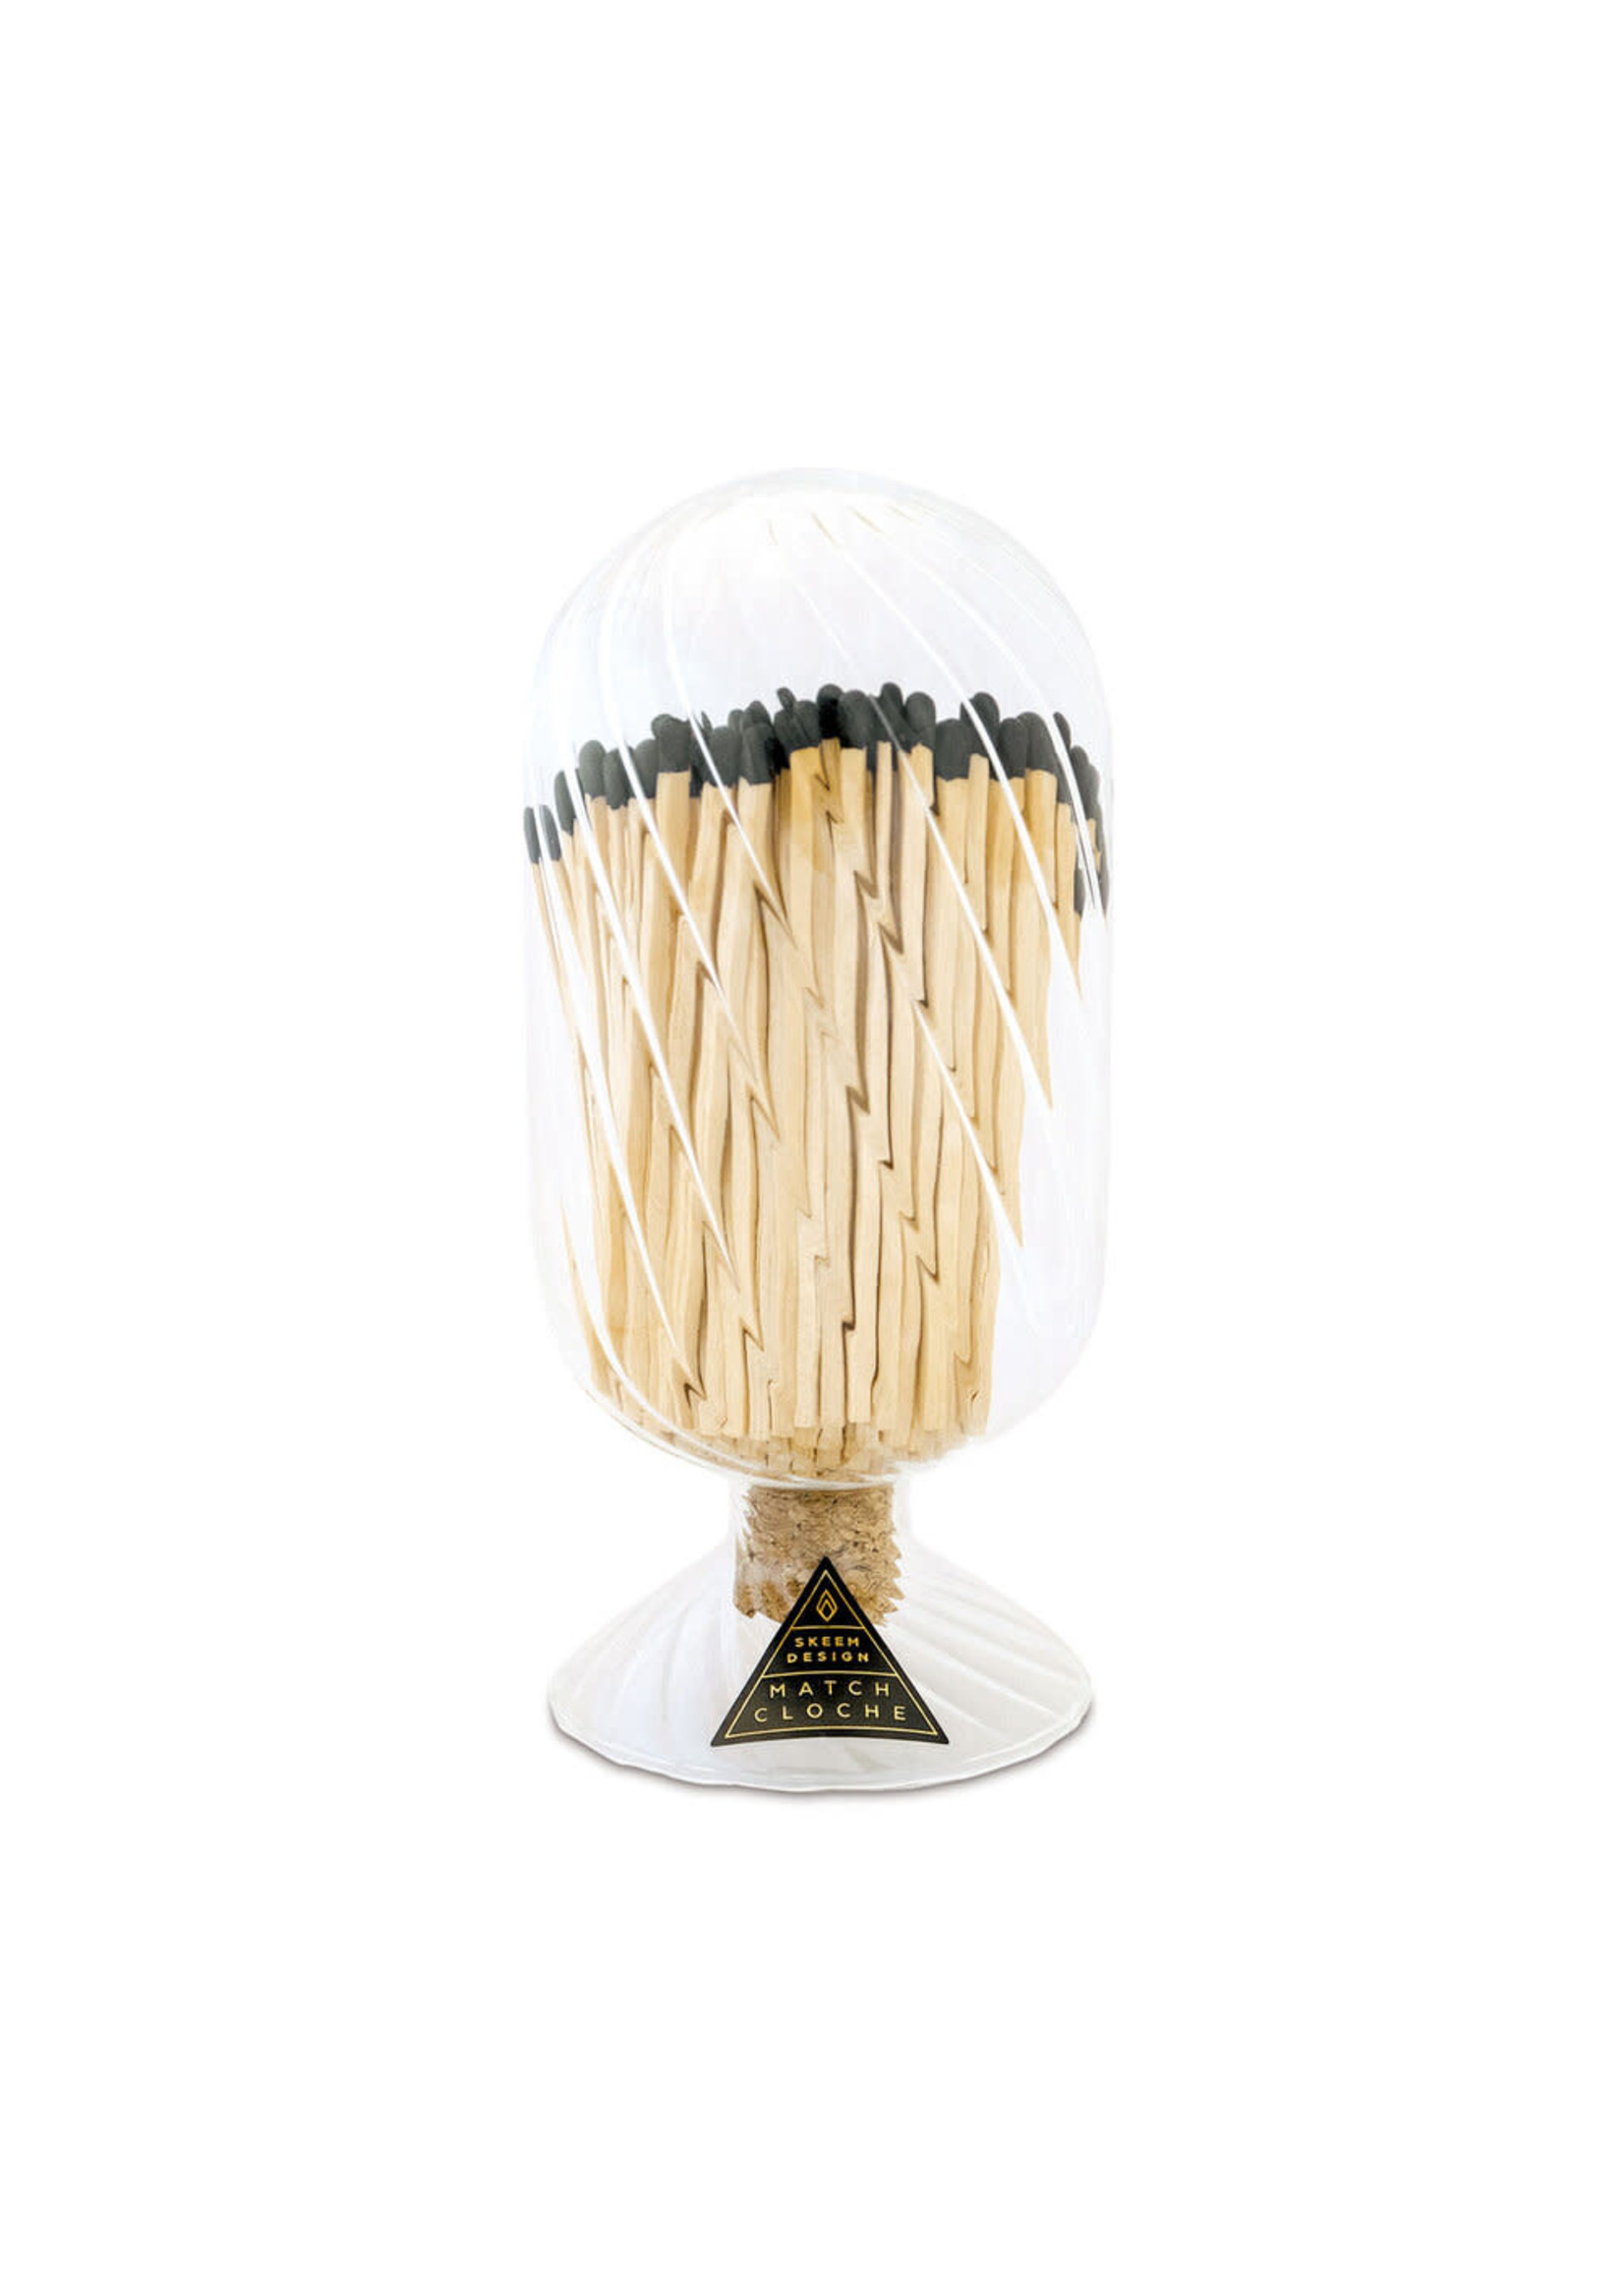 Ribbed Match Cloche - Black Tips